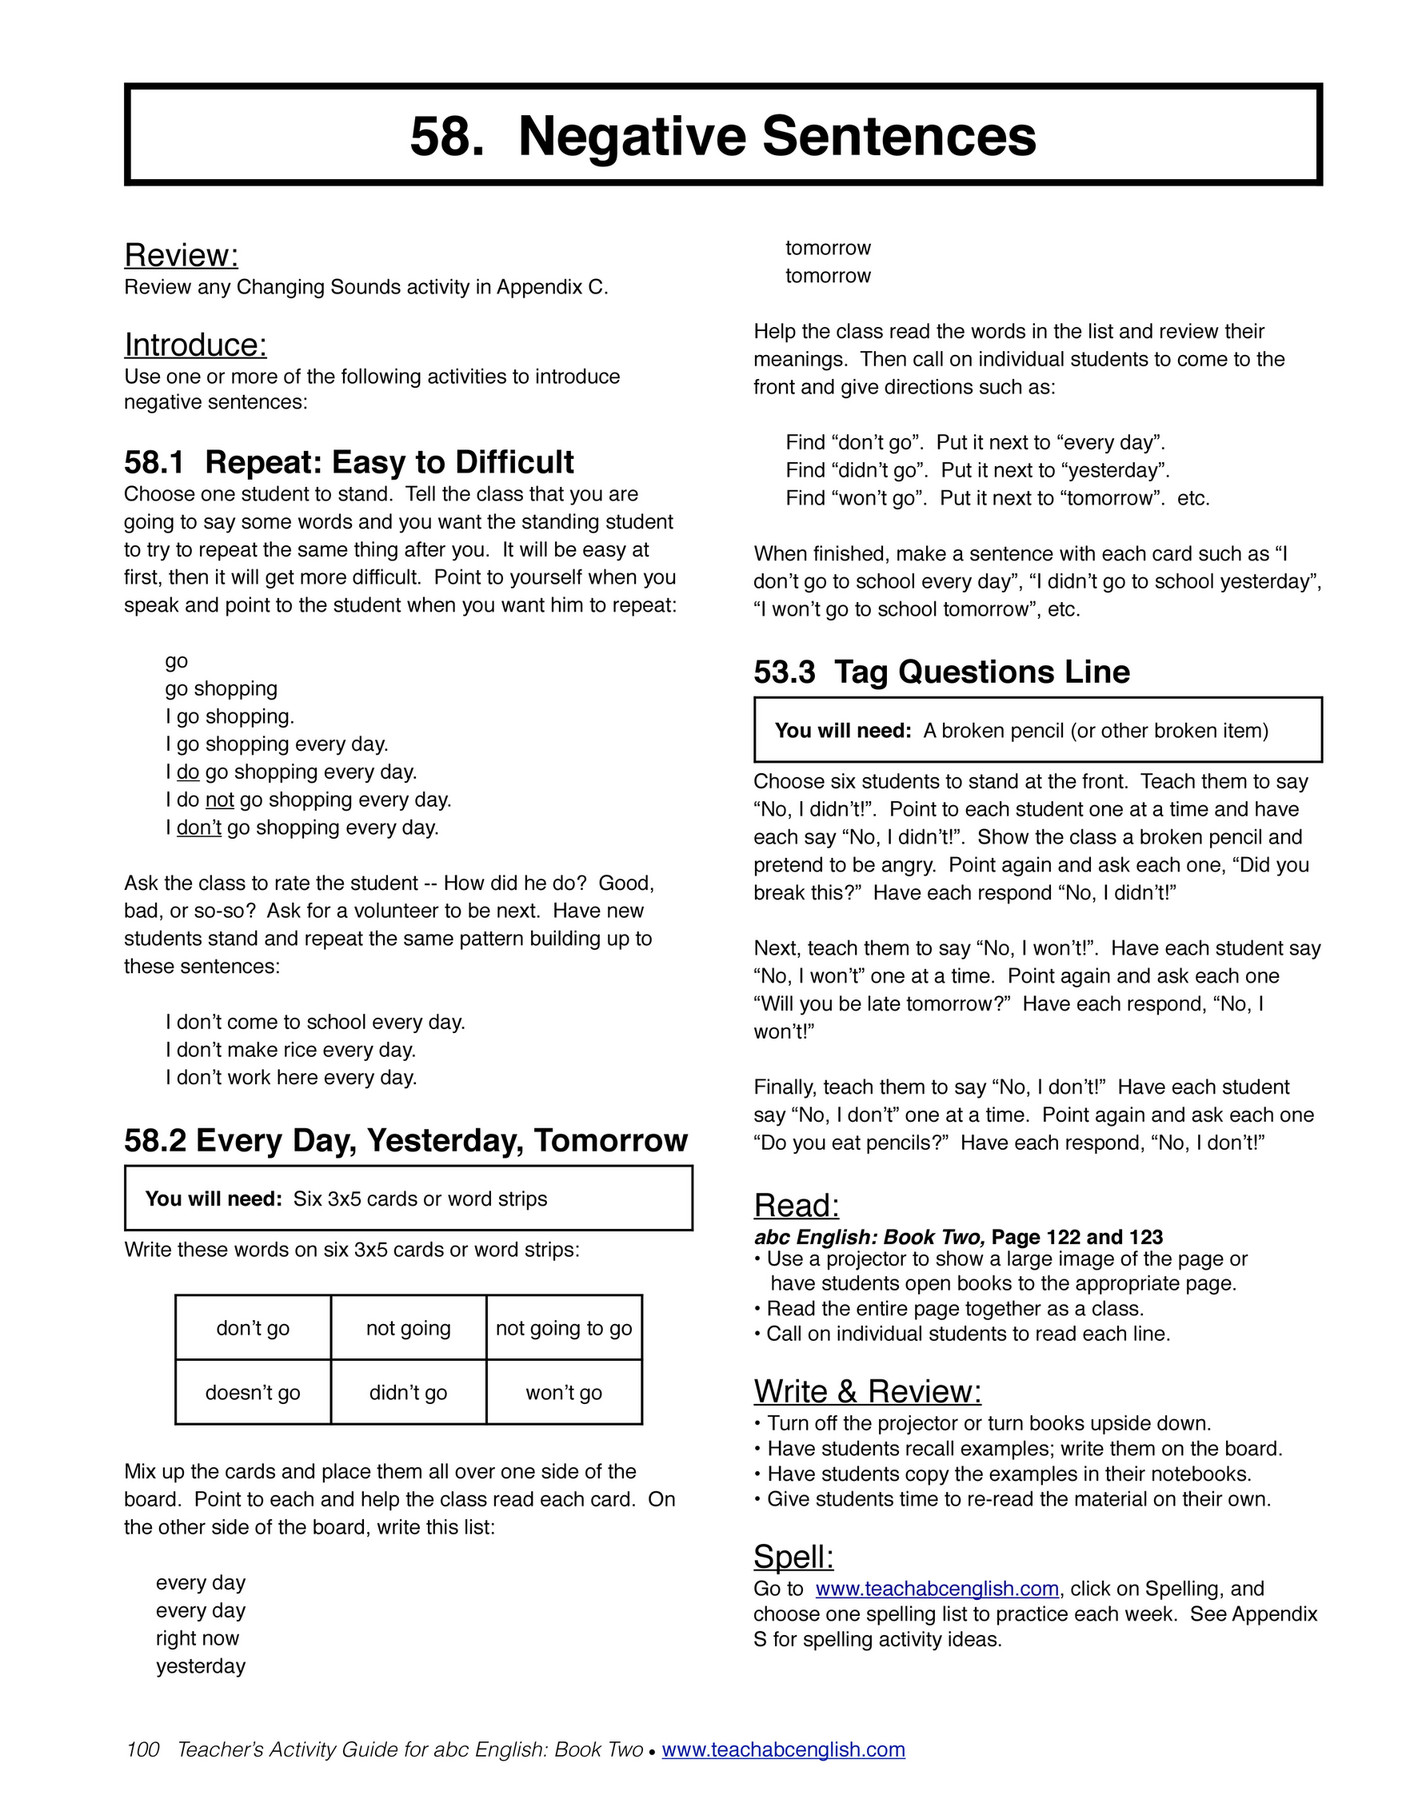 easy english readers teachersactivityguide2 page 100 101 a abc letter s and sounds b short and long vowels c change the first or last sounds d change the vowel sounds e syllables